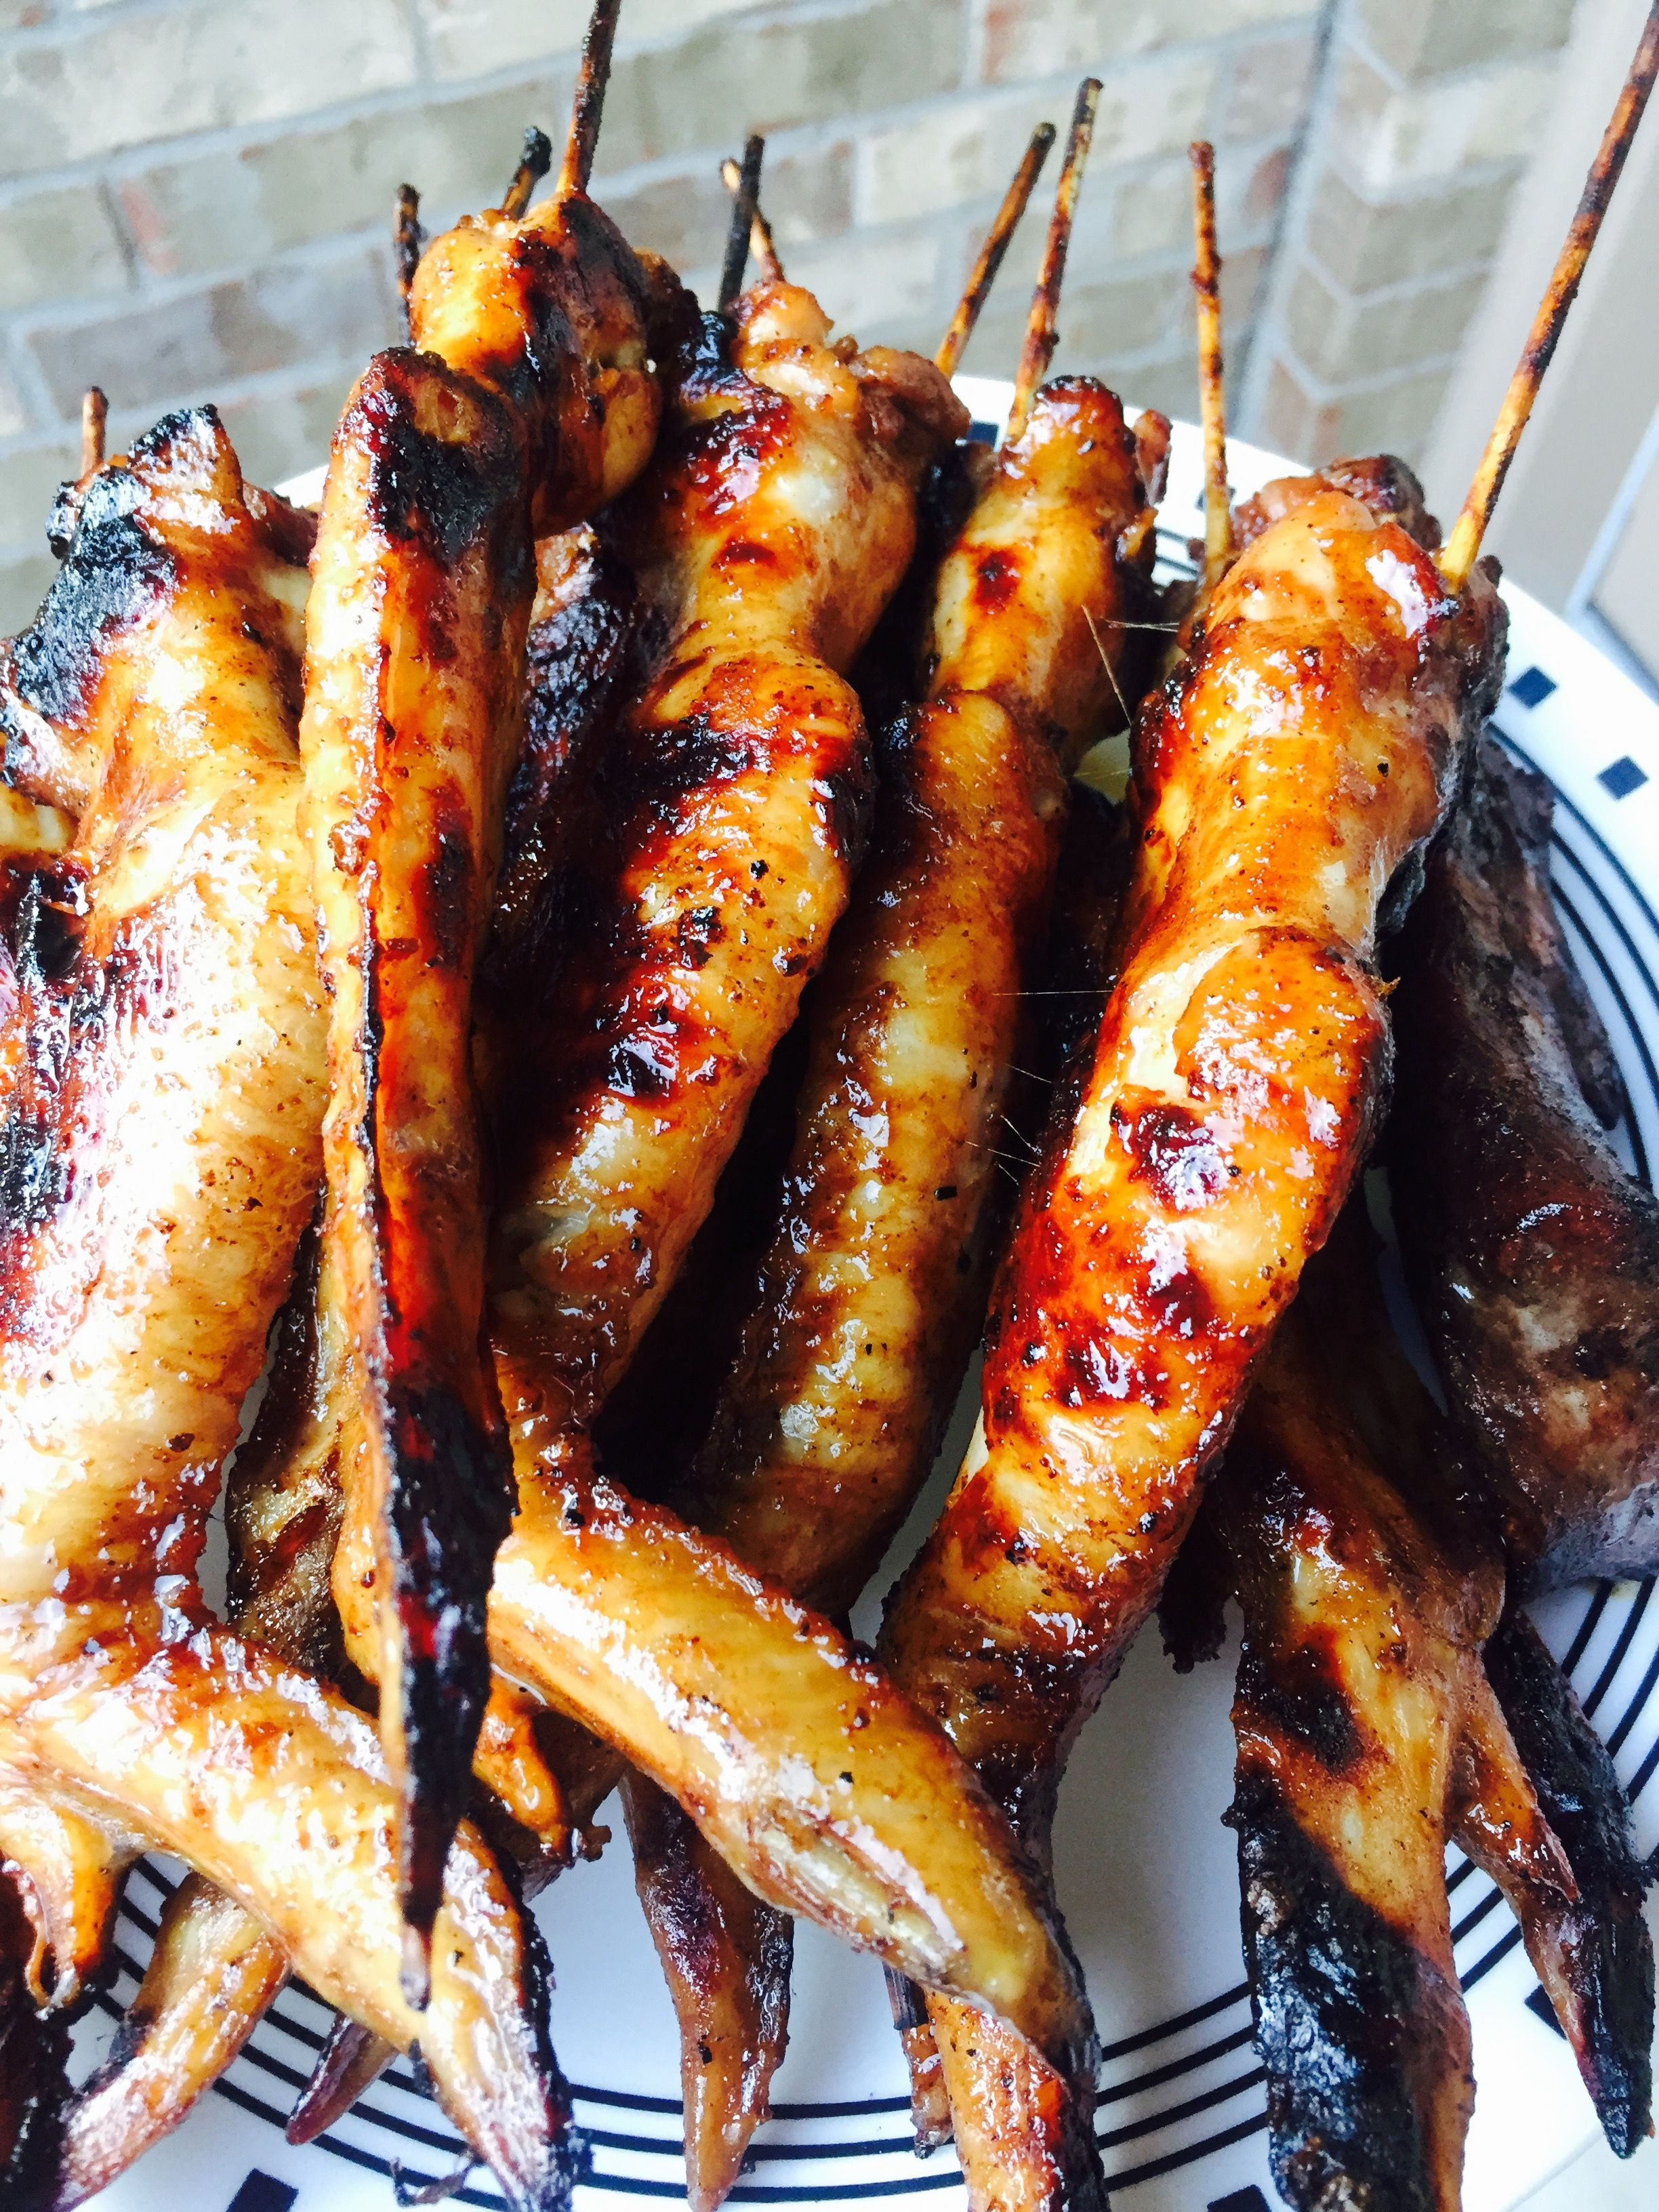 Lao Style Bbq Chicken On A Stick